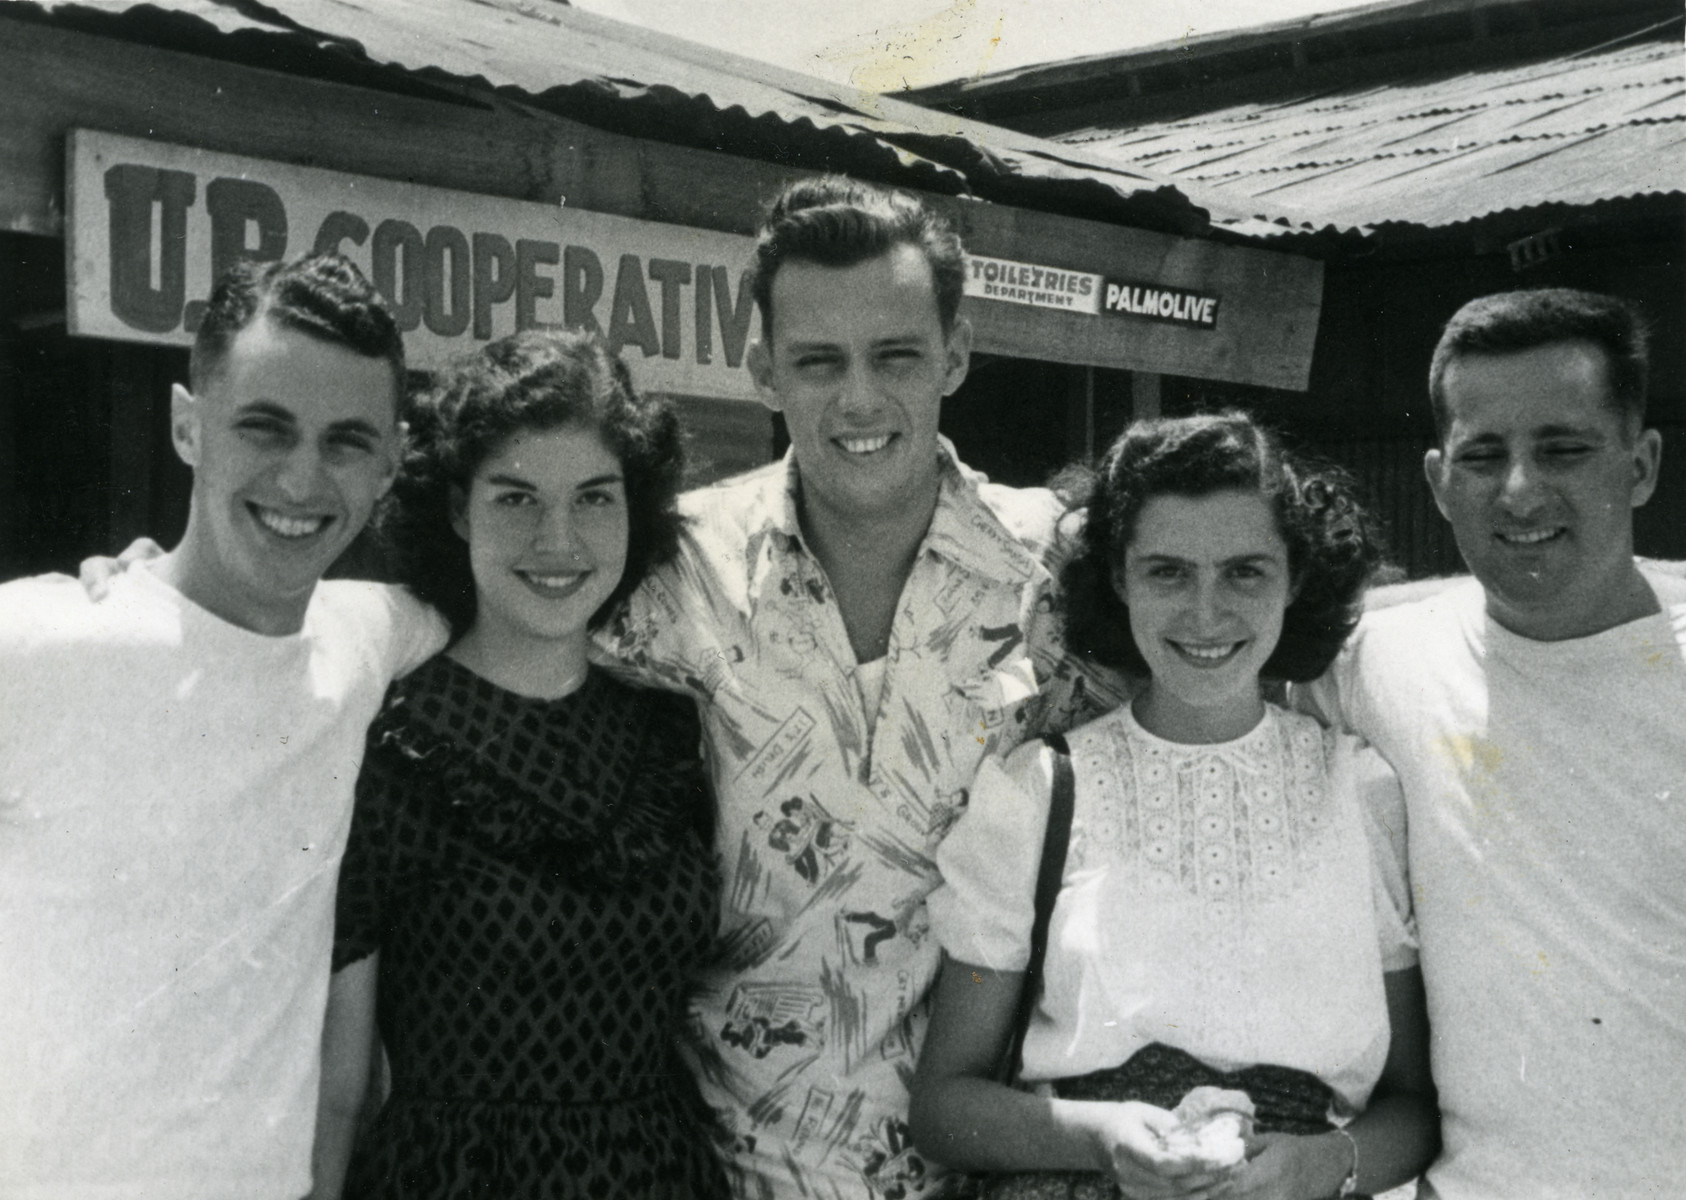 Jewish refugees and an American soldier pose in front of the American Army store in The Philippines.  Among those pictured are Becky Koenigsberg, Manfred Hecht and Margot Cassel.